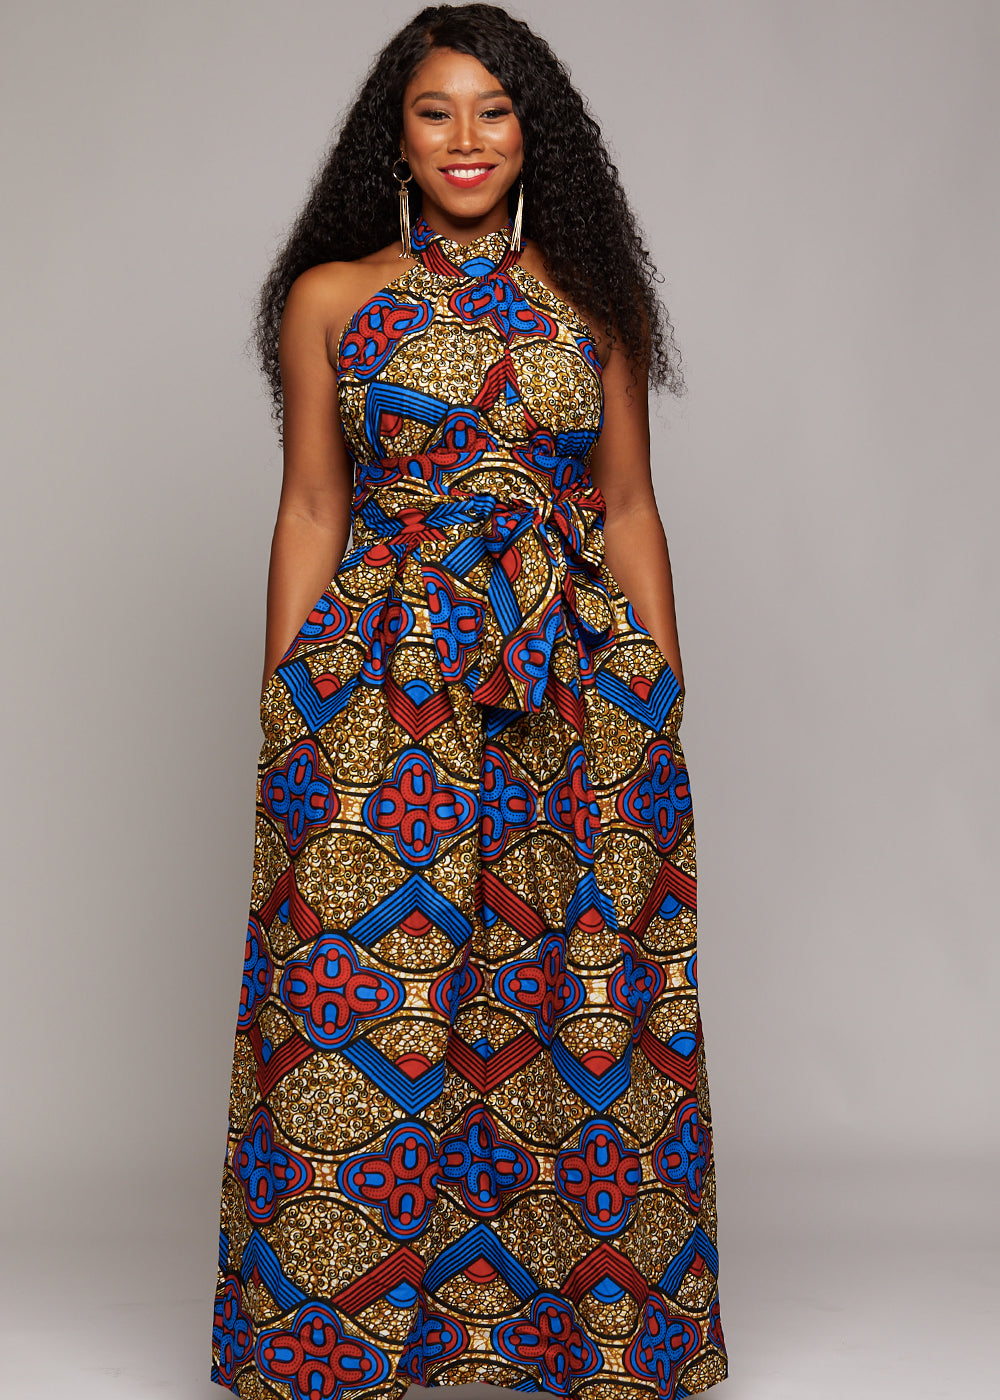 Ronke African Print Maxi Dress Red Blue Tan D Iyanu